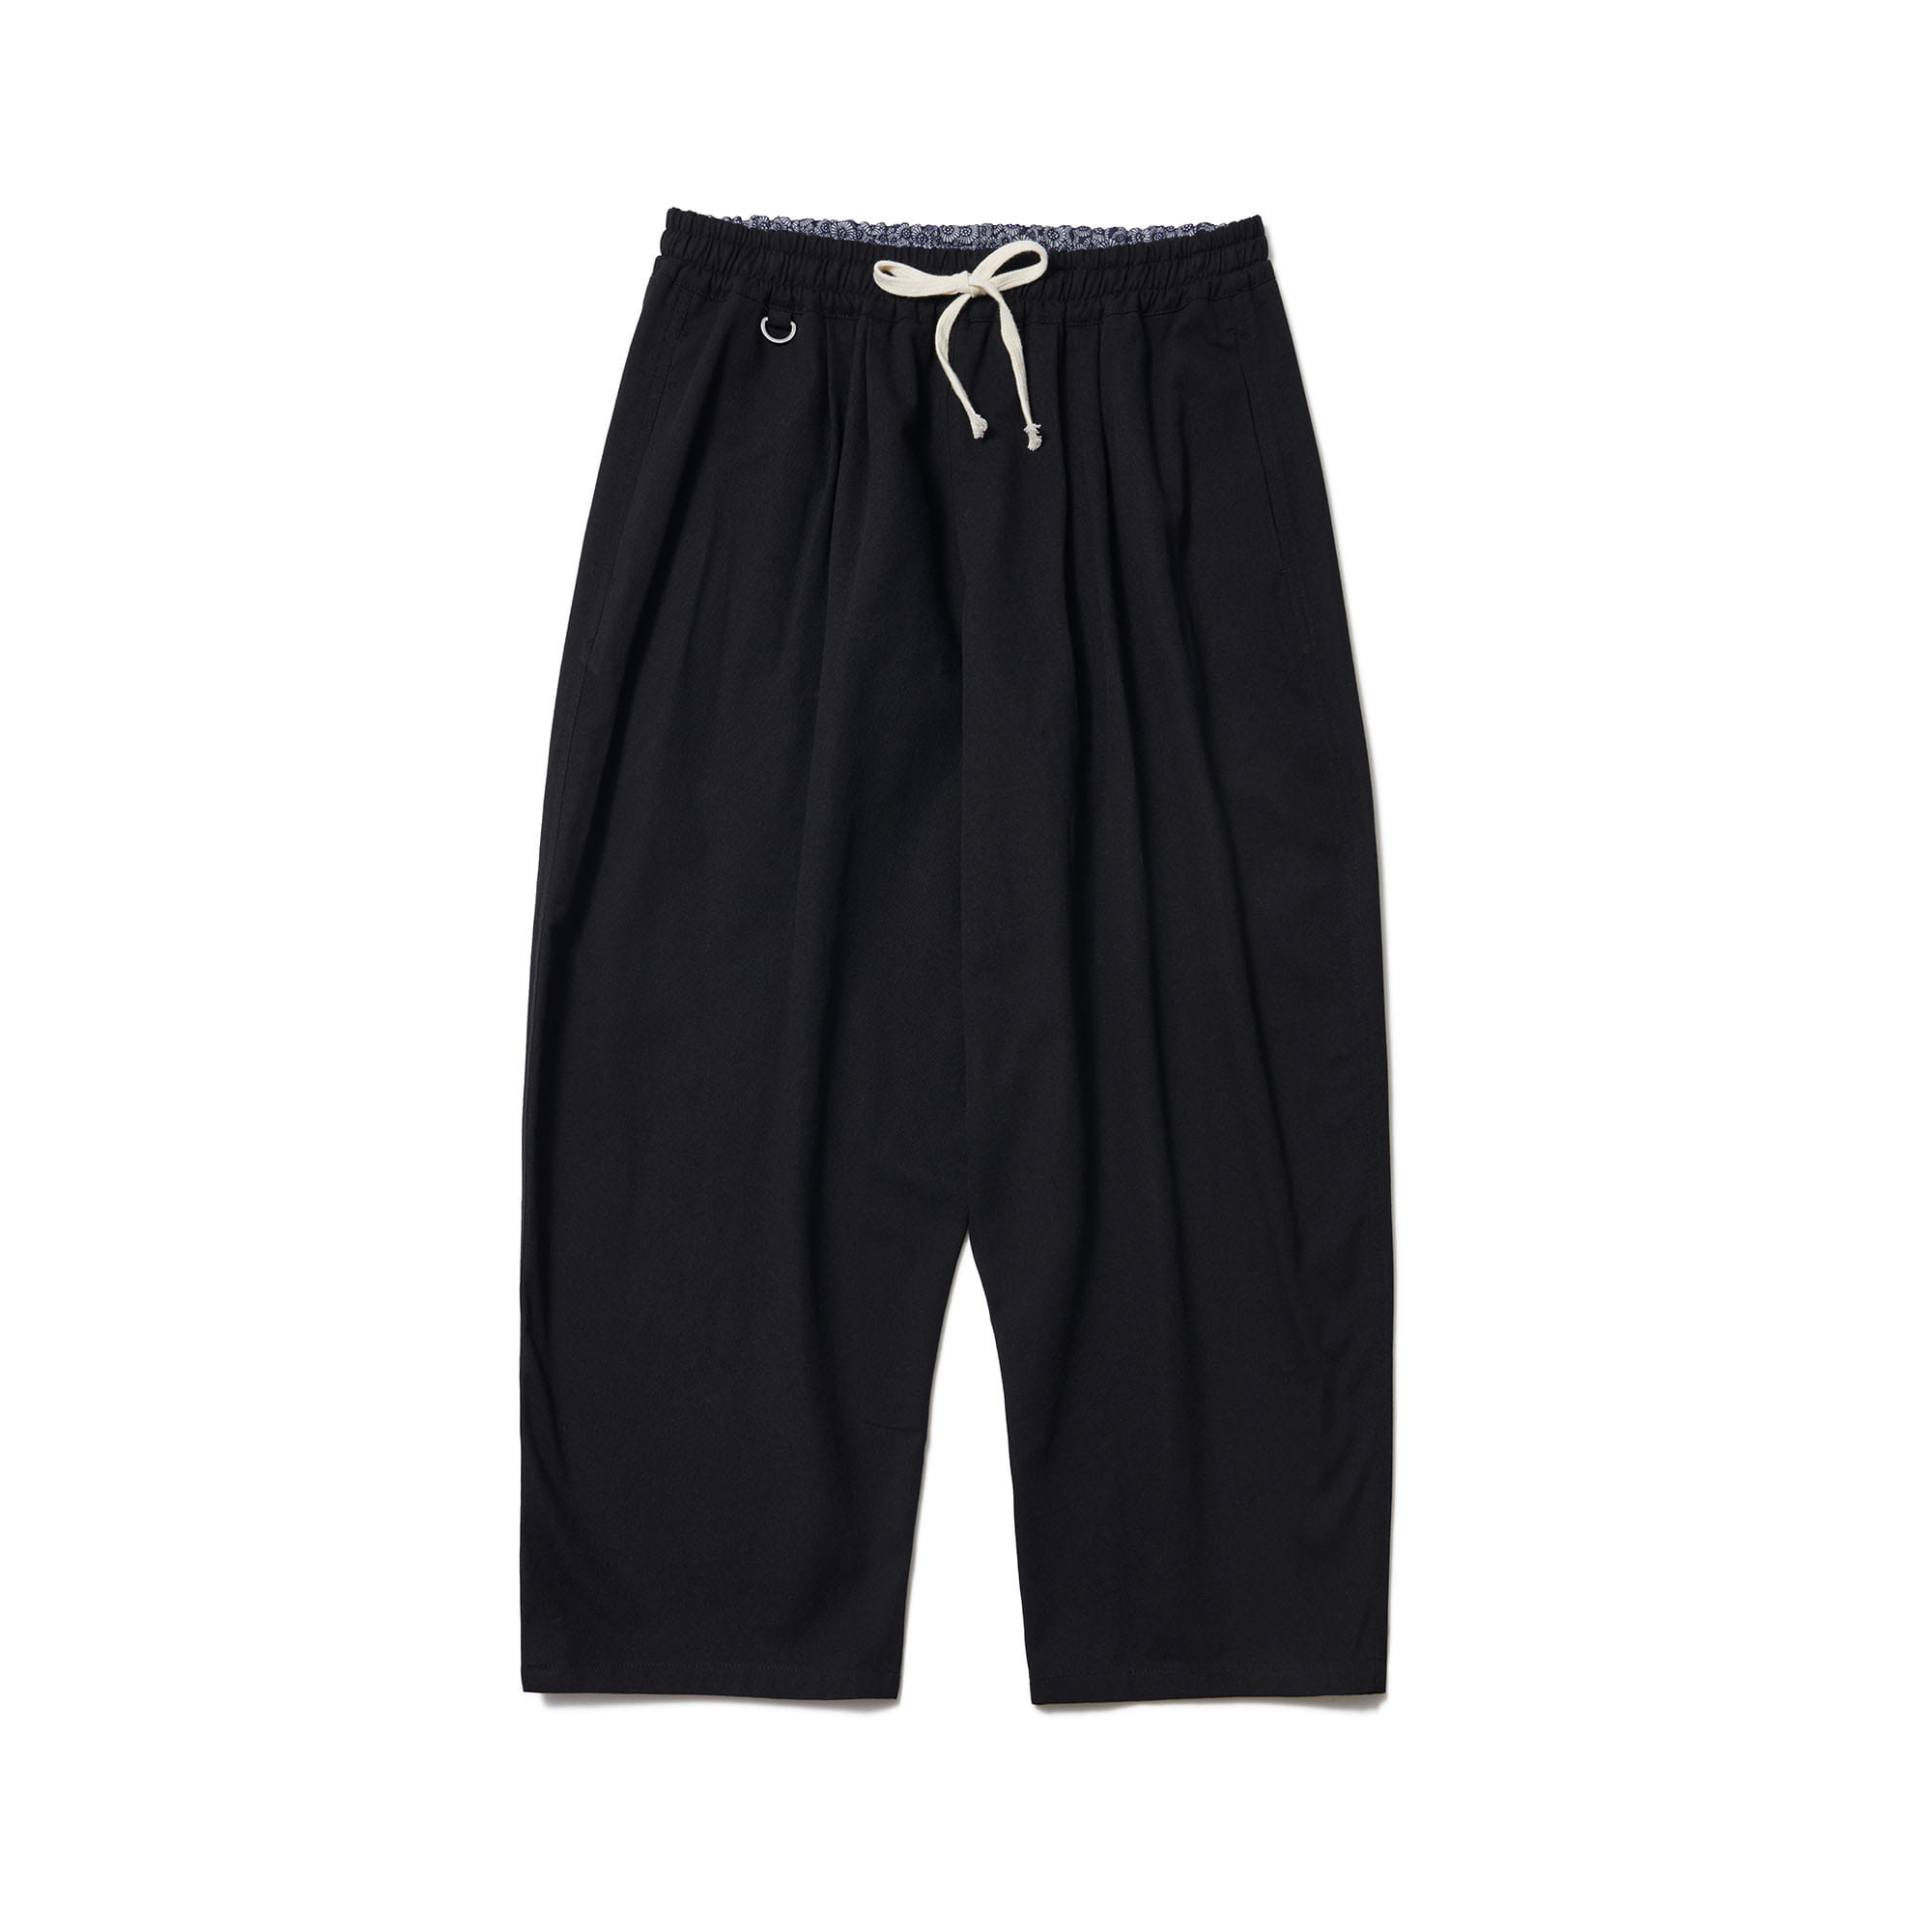 [Restock] Chino Long Capris Pants Black